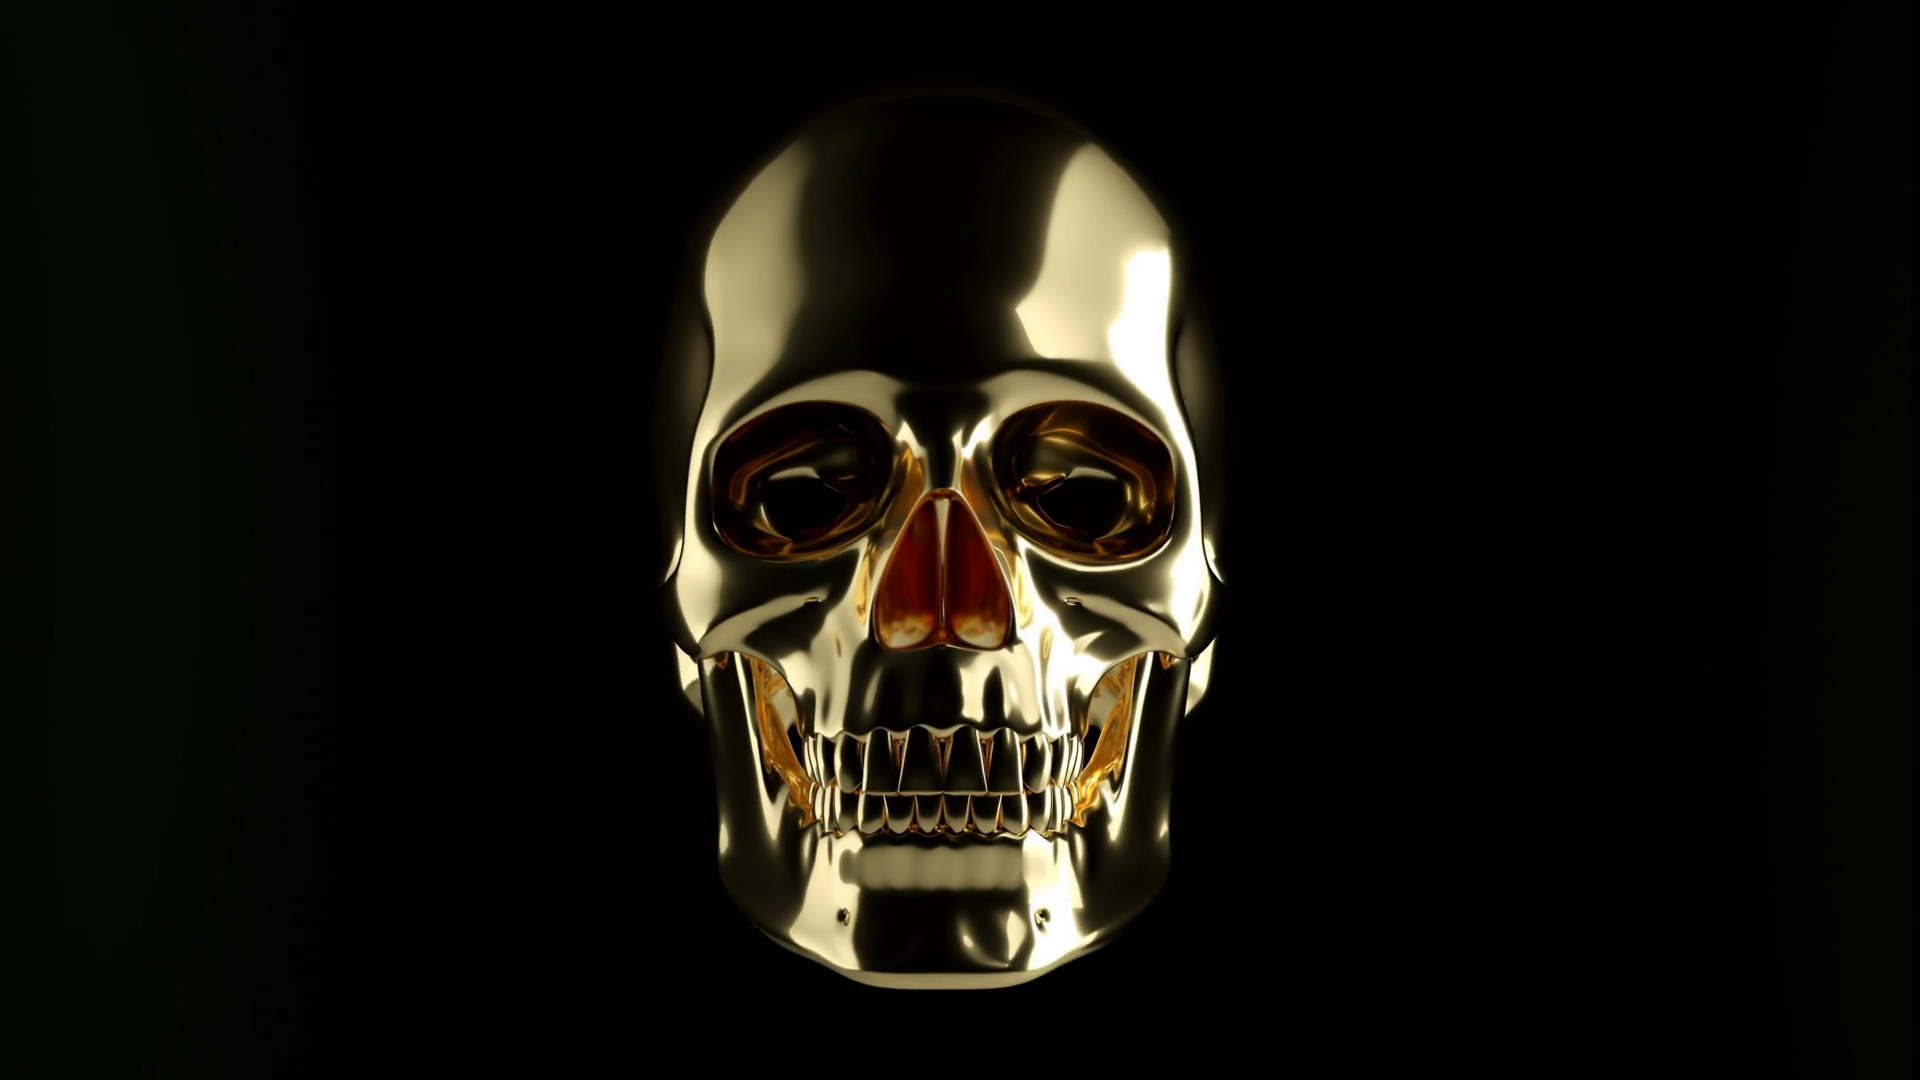 1920x1080 Golden skull appearing from the dark. black background with alpha channel  Motion Background - Storyblocks Video